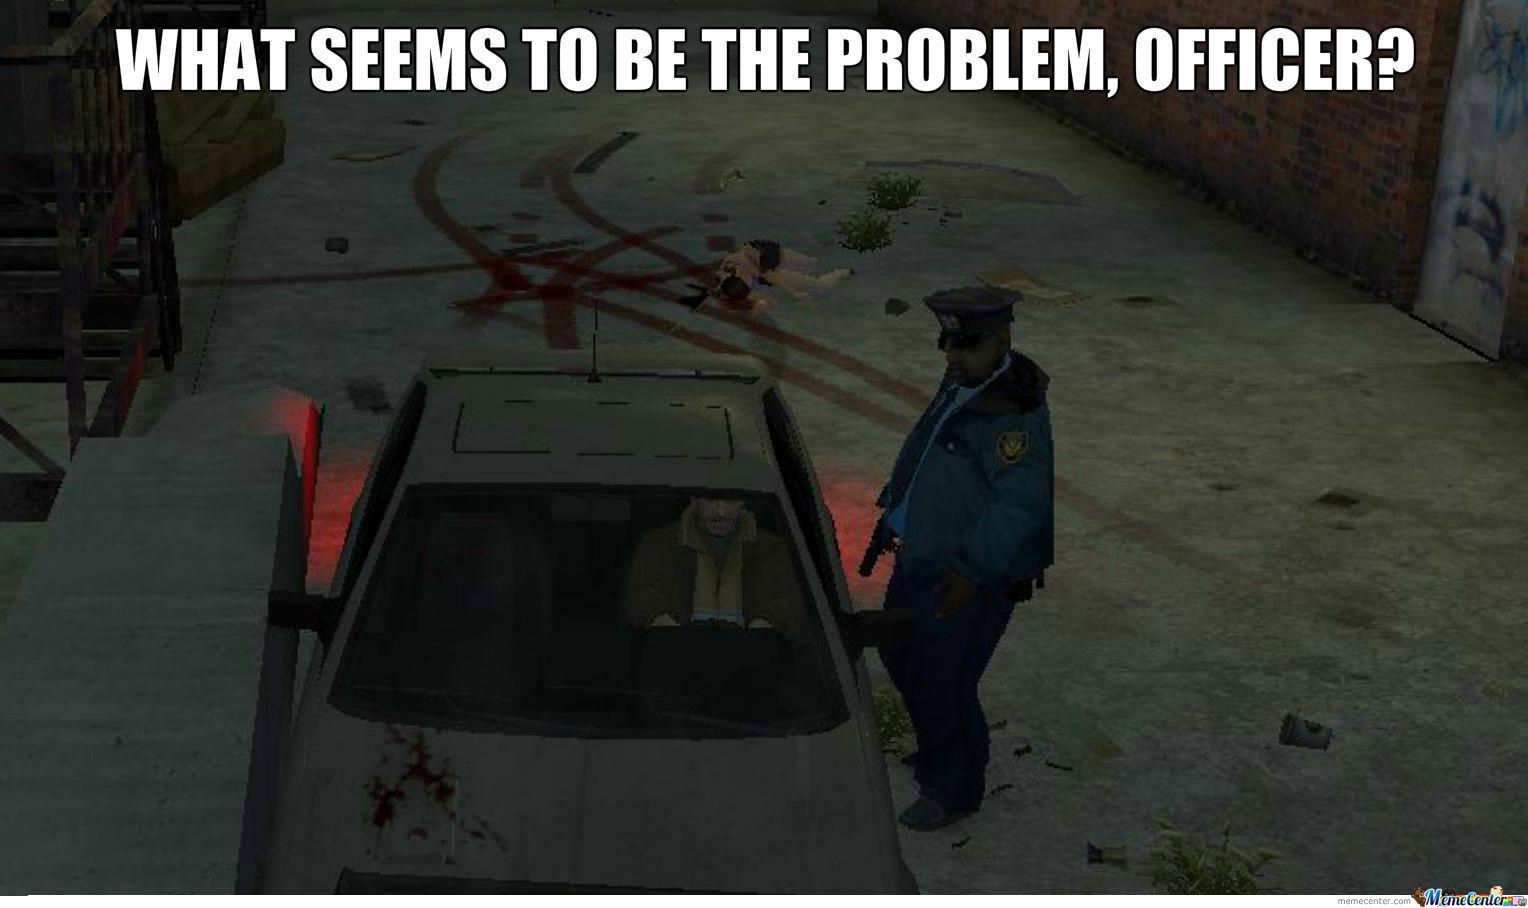 What Seems To Be The Problem, Officer?